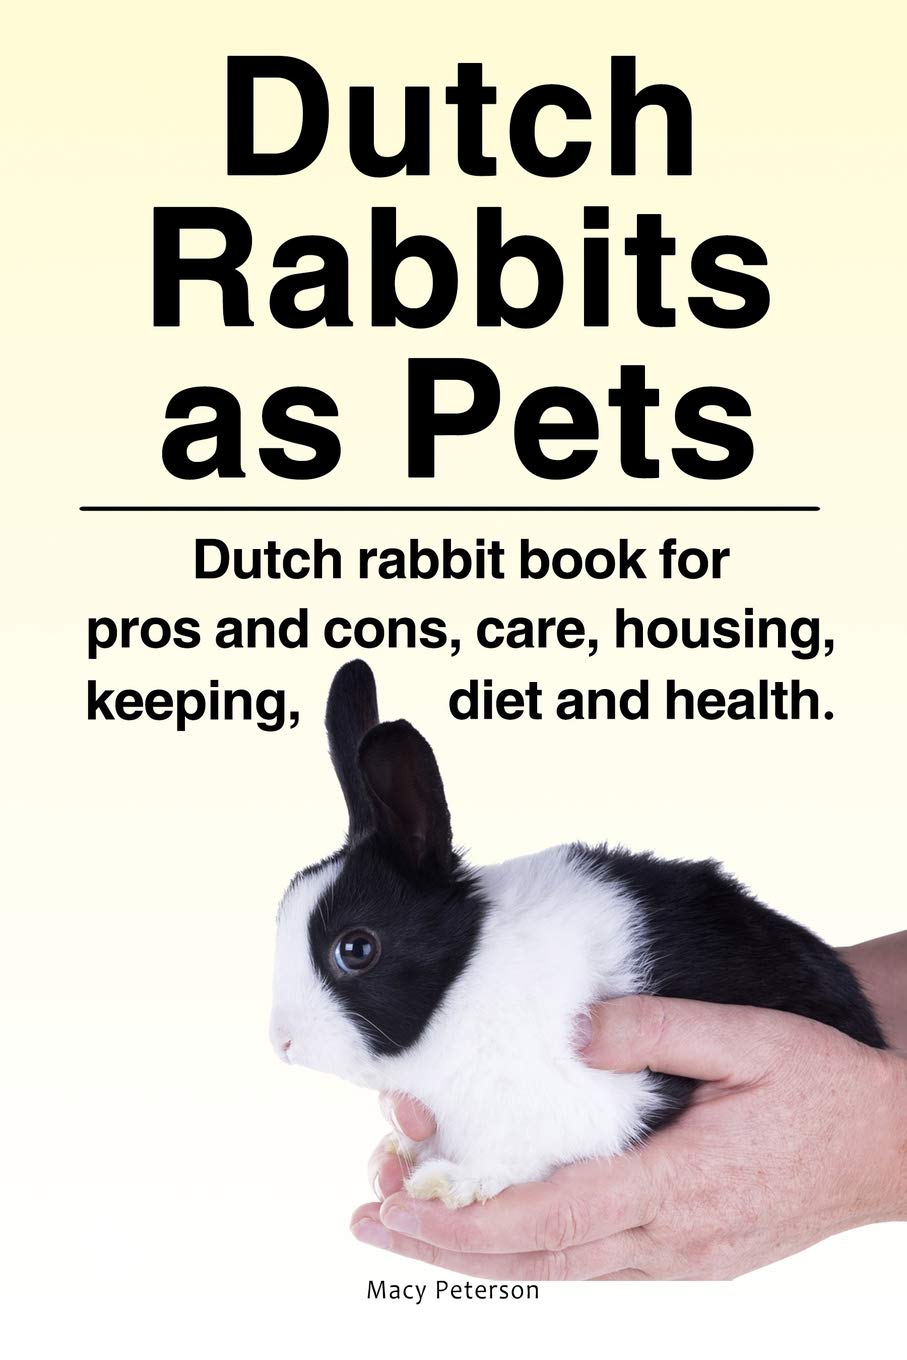 Dutch Rabbits. Dutch Rabbits As Pets. Dutch Rabbit Book For Pros And Cons Care Housing Keeping Diet And Health.